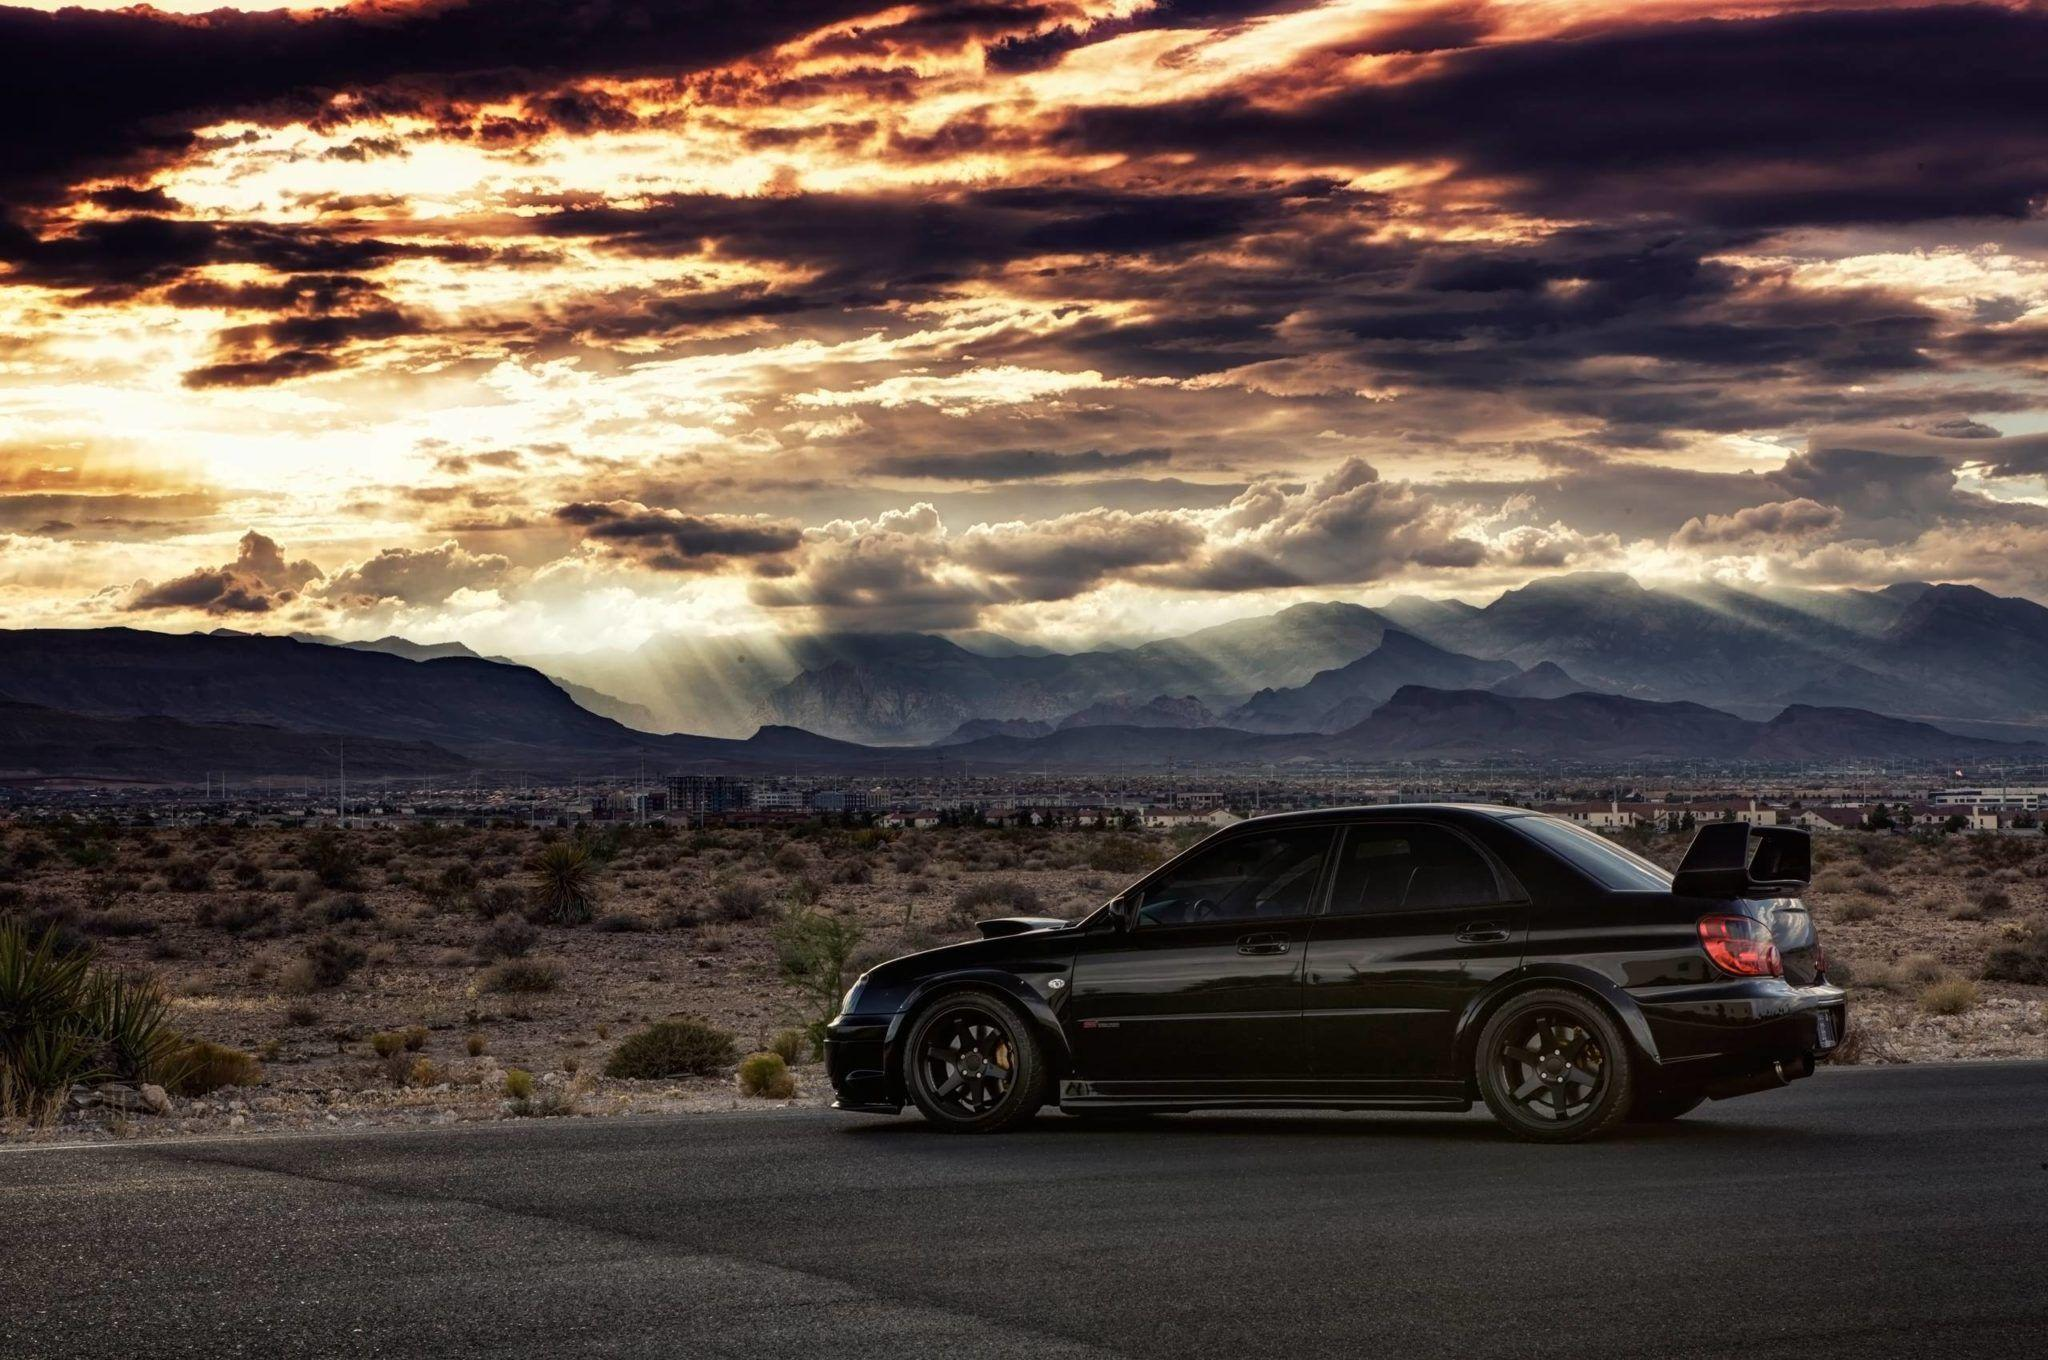 Pin by Khalilahmadkhan on Subaru Car Full HD Wallpapers Free ...